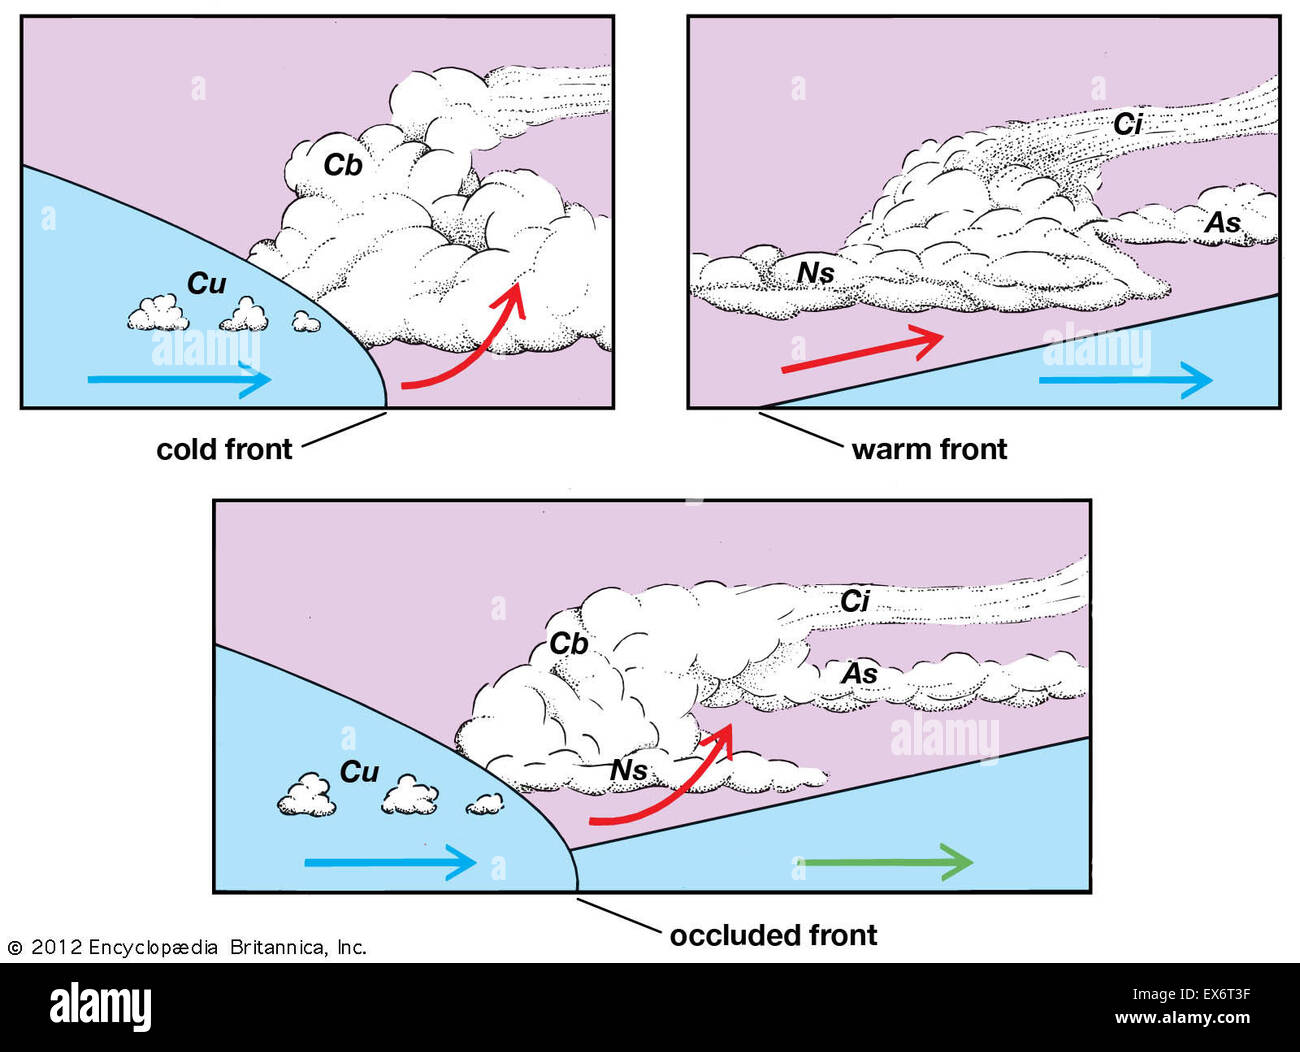 Weather fronts - Stock Image